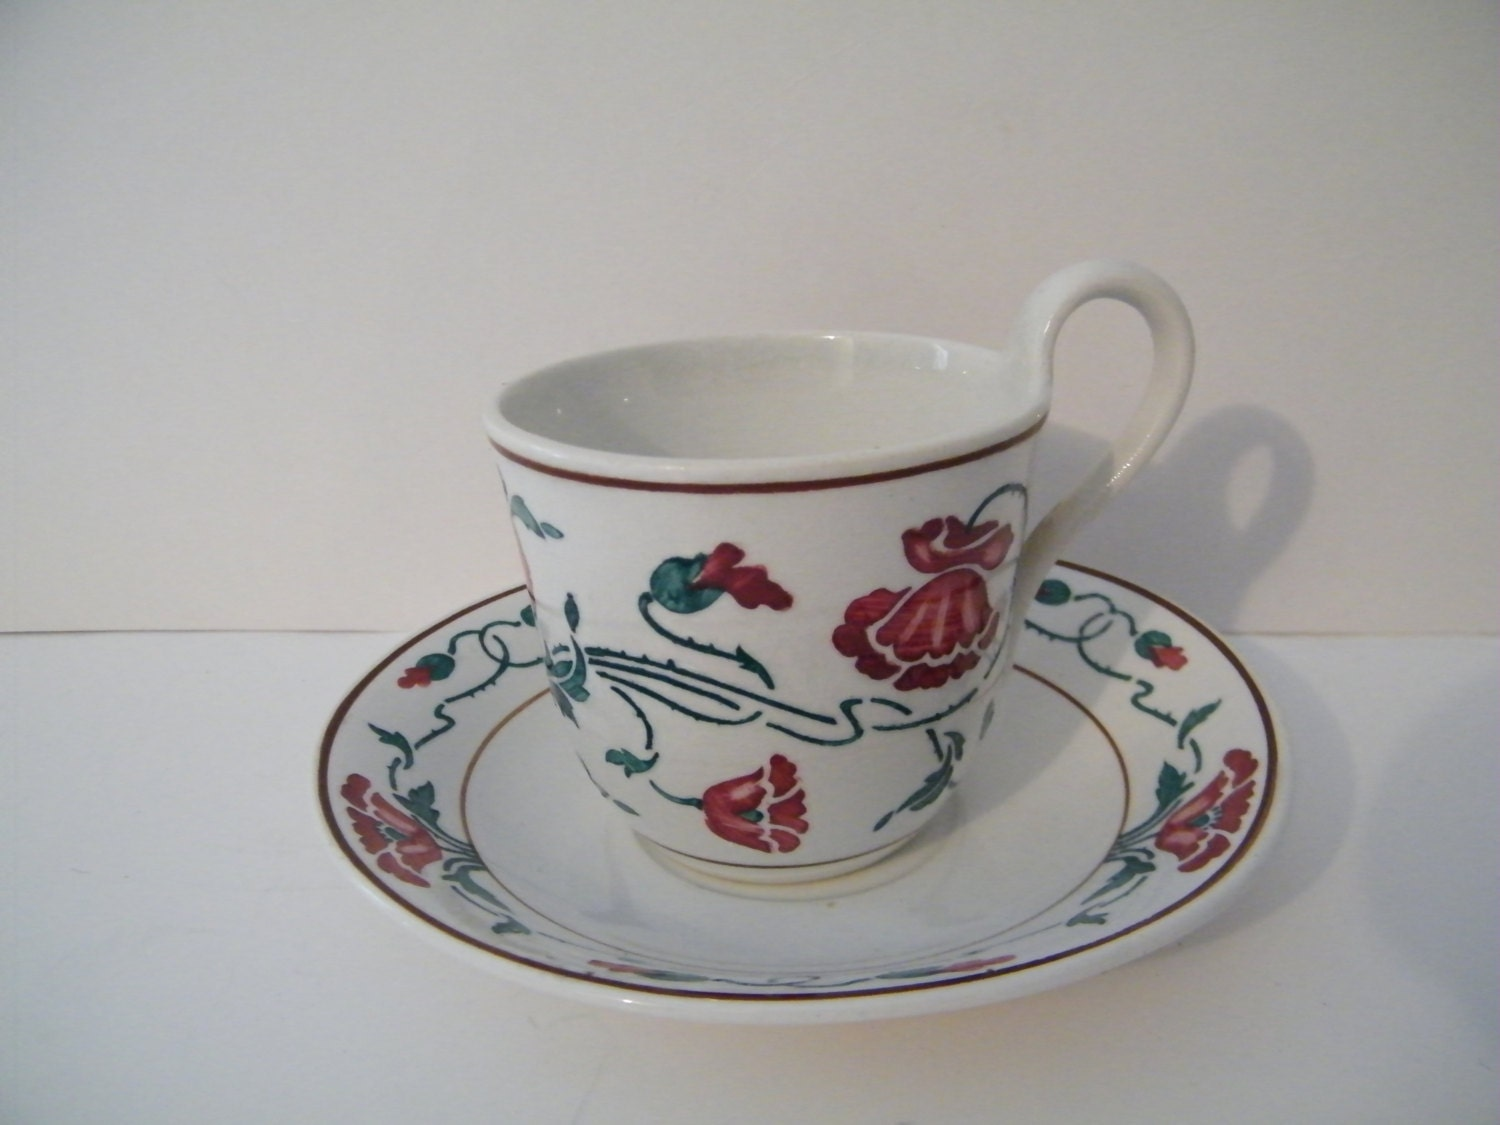 villeroy and boch dresden cup and saucer set vintage mid. Black Bedroom Furniture Sets. Home Design Ideas